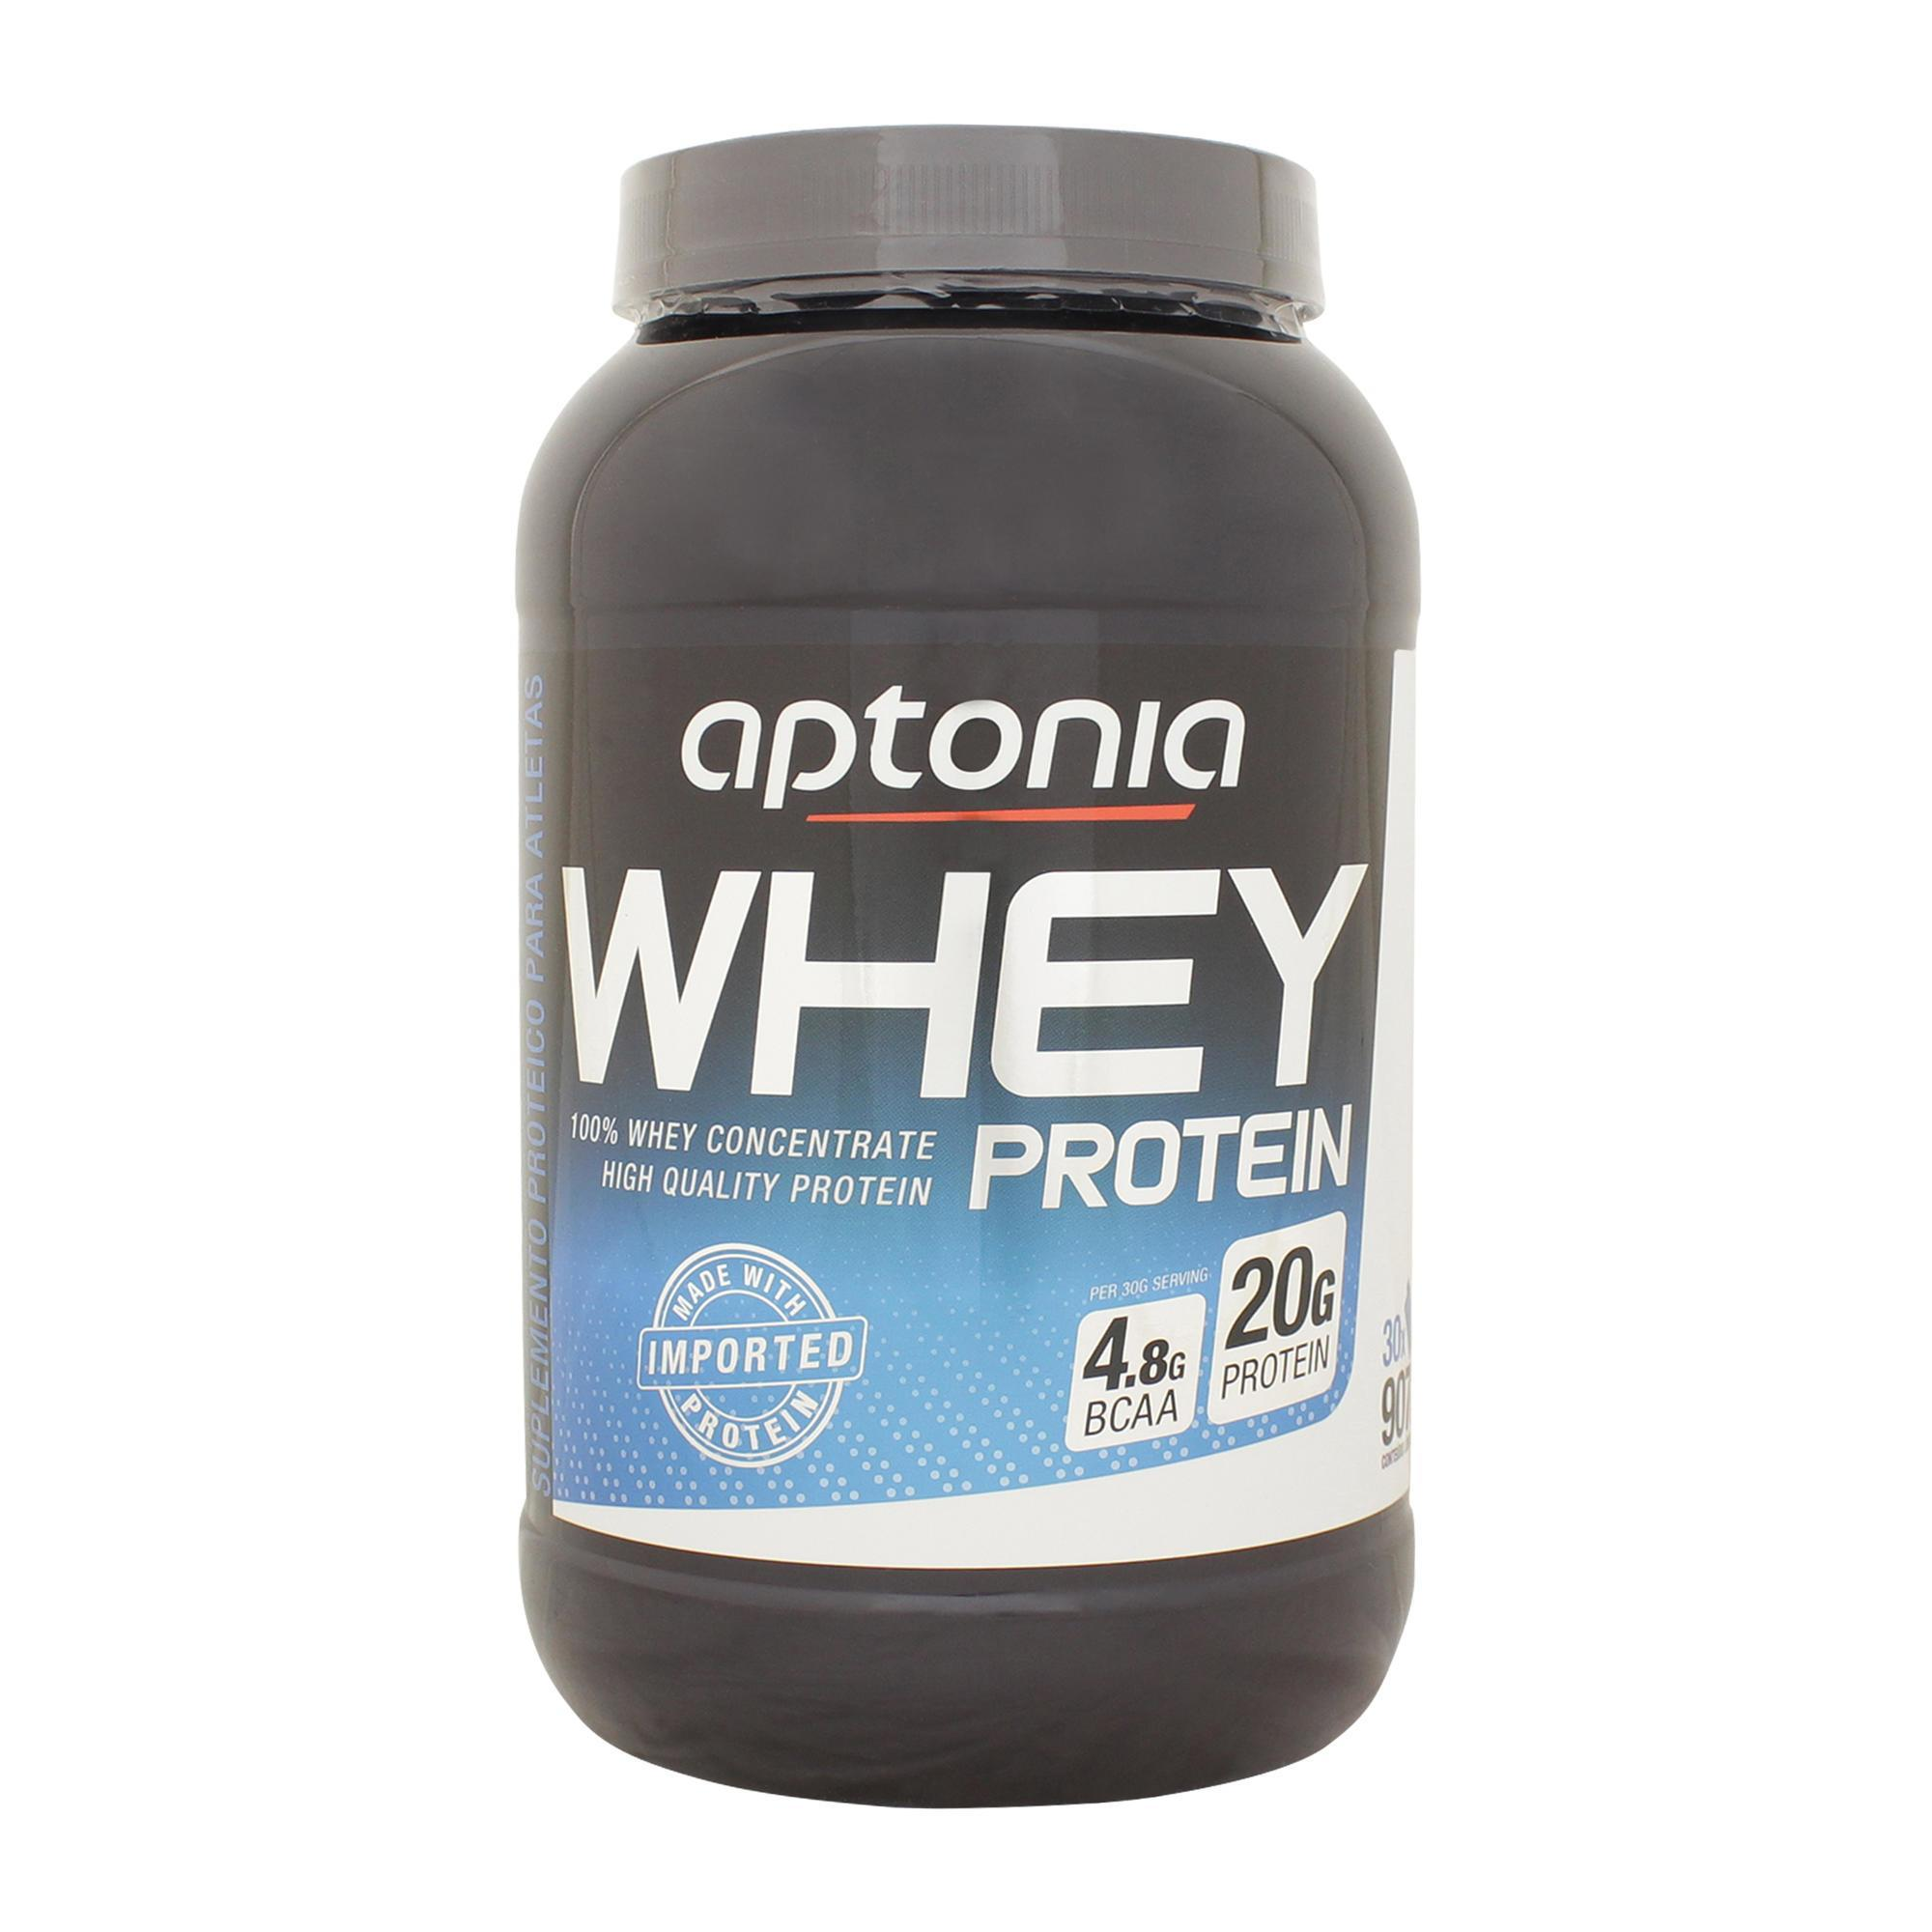 WHEY PROTEIN CONCENTRADO APTONIA CHOCOLATE | Aptonia